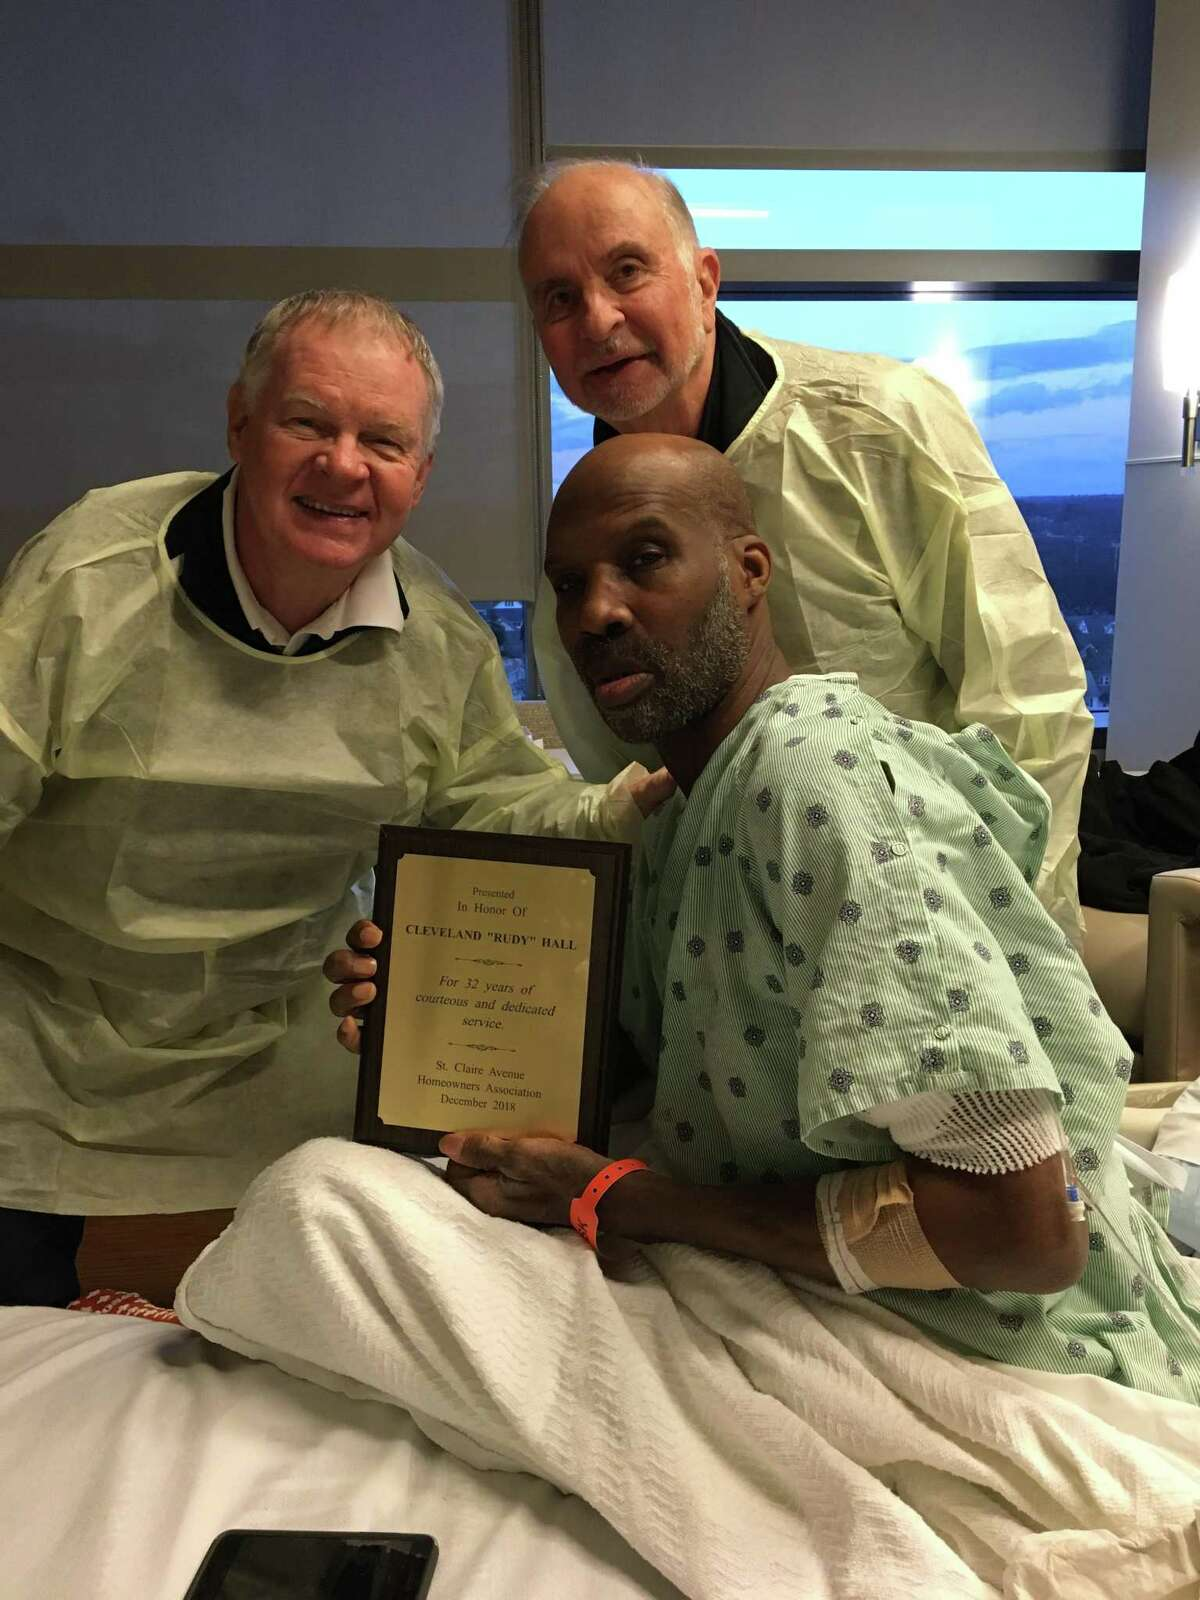 Cleveland 'Rudy' Hall is presented with a plaque commemorating his decades of service to the St. Claire Homeowners Association. He receives the award from Andy Reid the group's president, accompanied by Al Amato, after he was hospitalized for complications from diabetes.